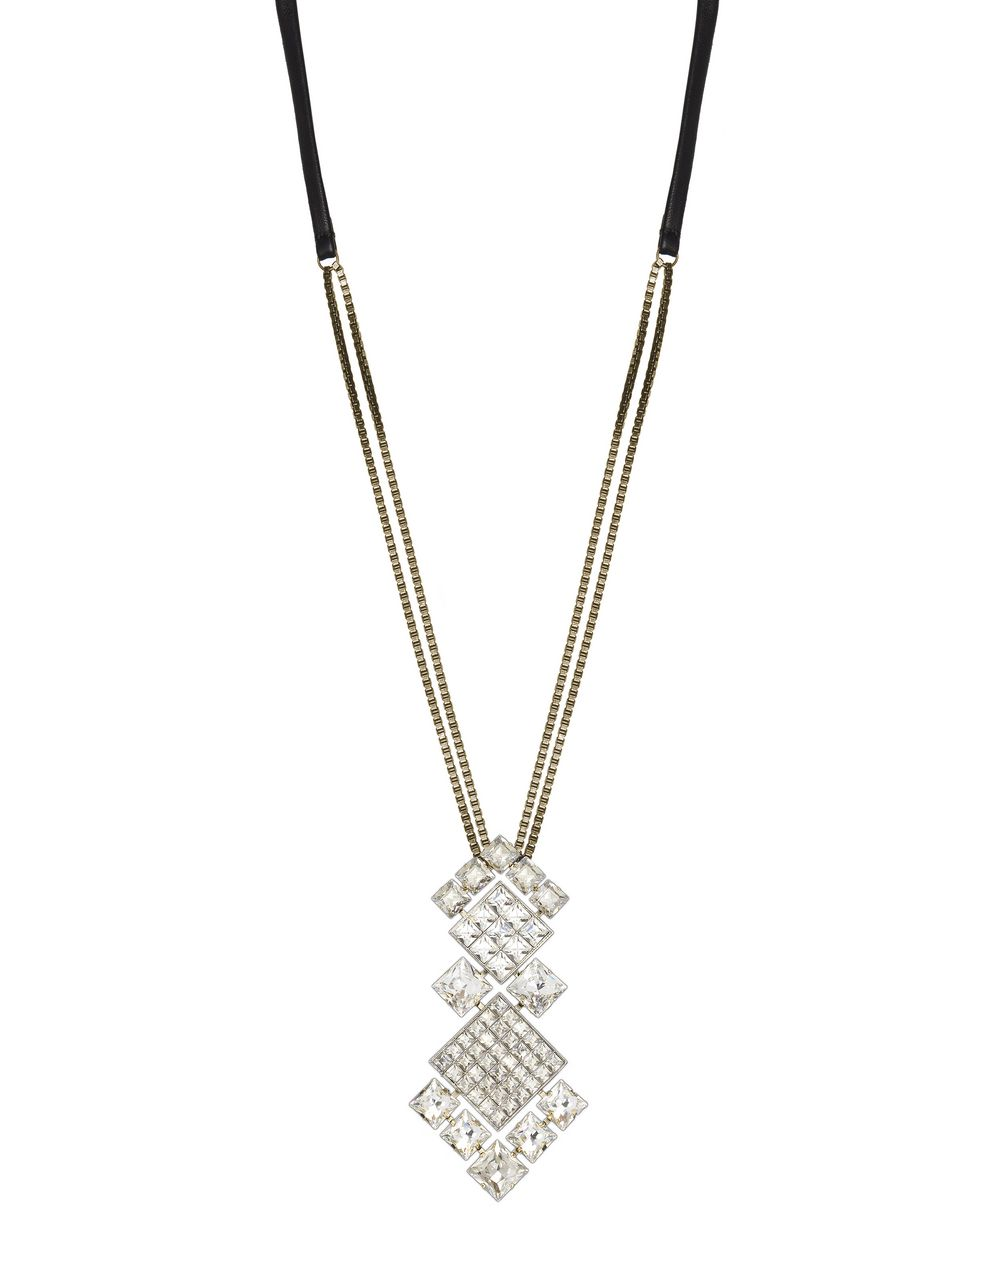 Collier Diamond Square composé de diamants en pierres Swarovski de couleur cristal, Lanvin – Prix €995